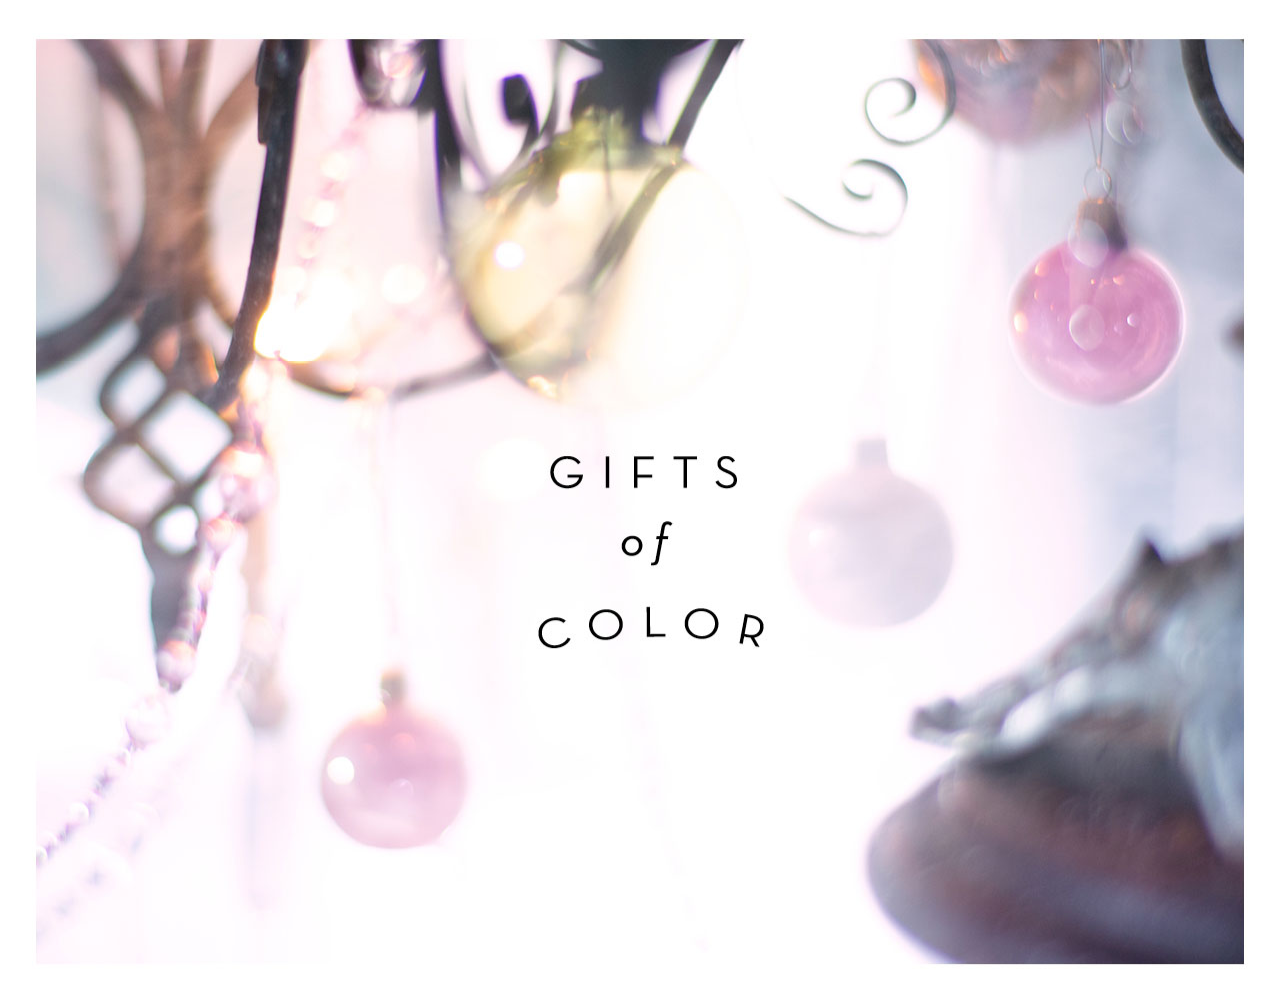 gifts of color